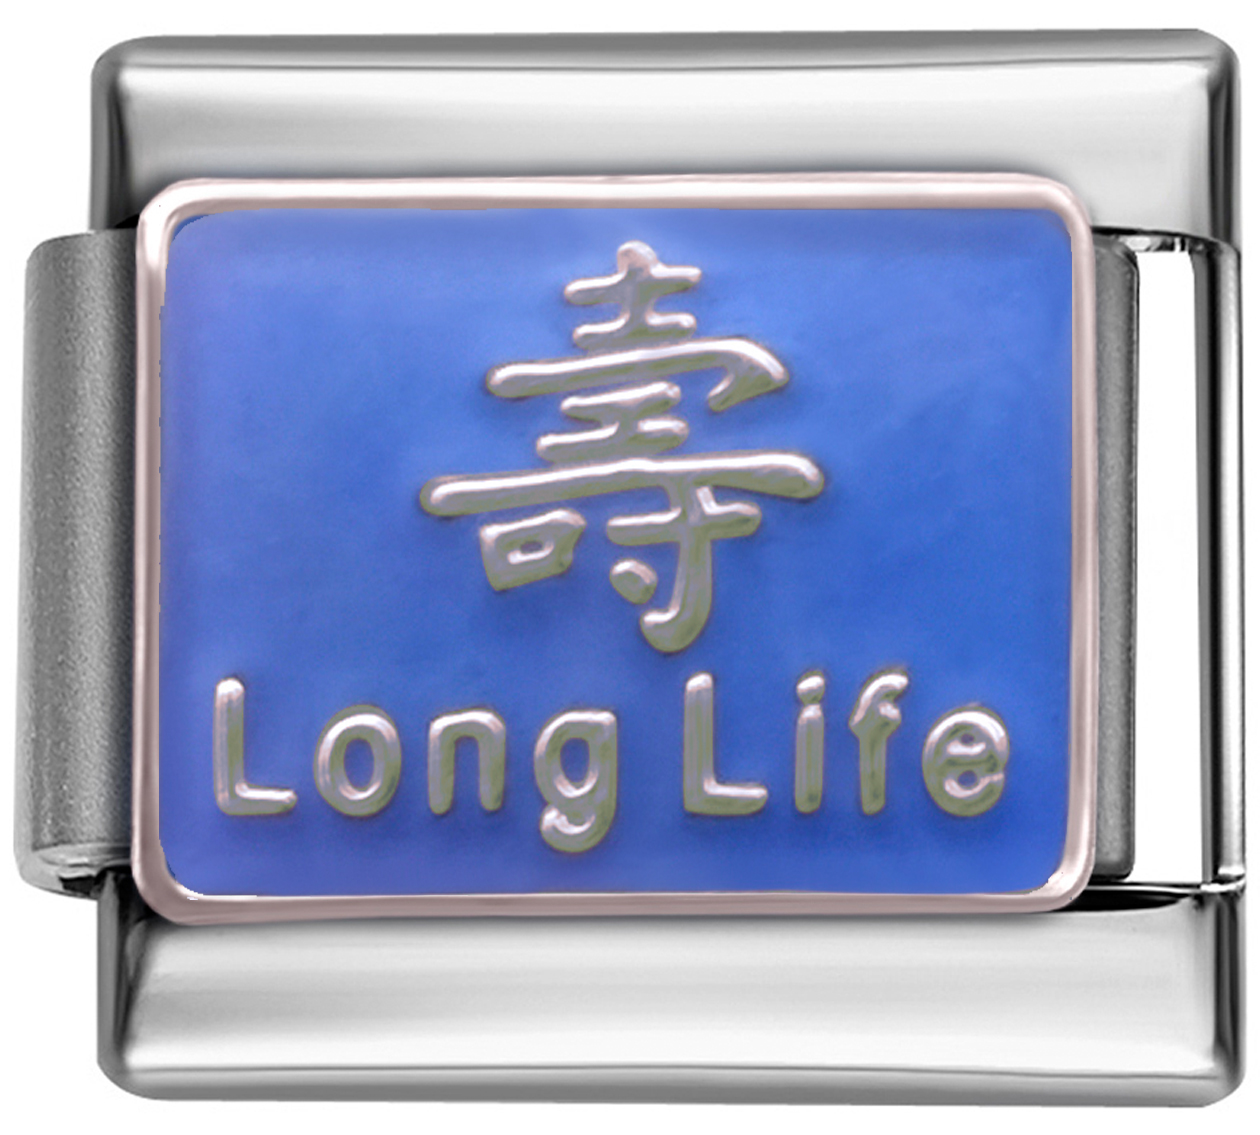 Details about LONG LIFE LUCKY Enamel Italian 9mm Charm NC179 Fits  Nomination Classic